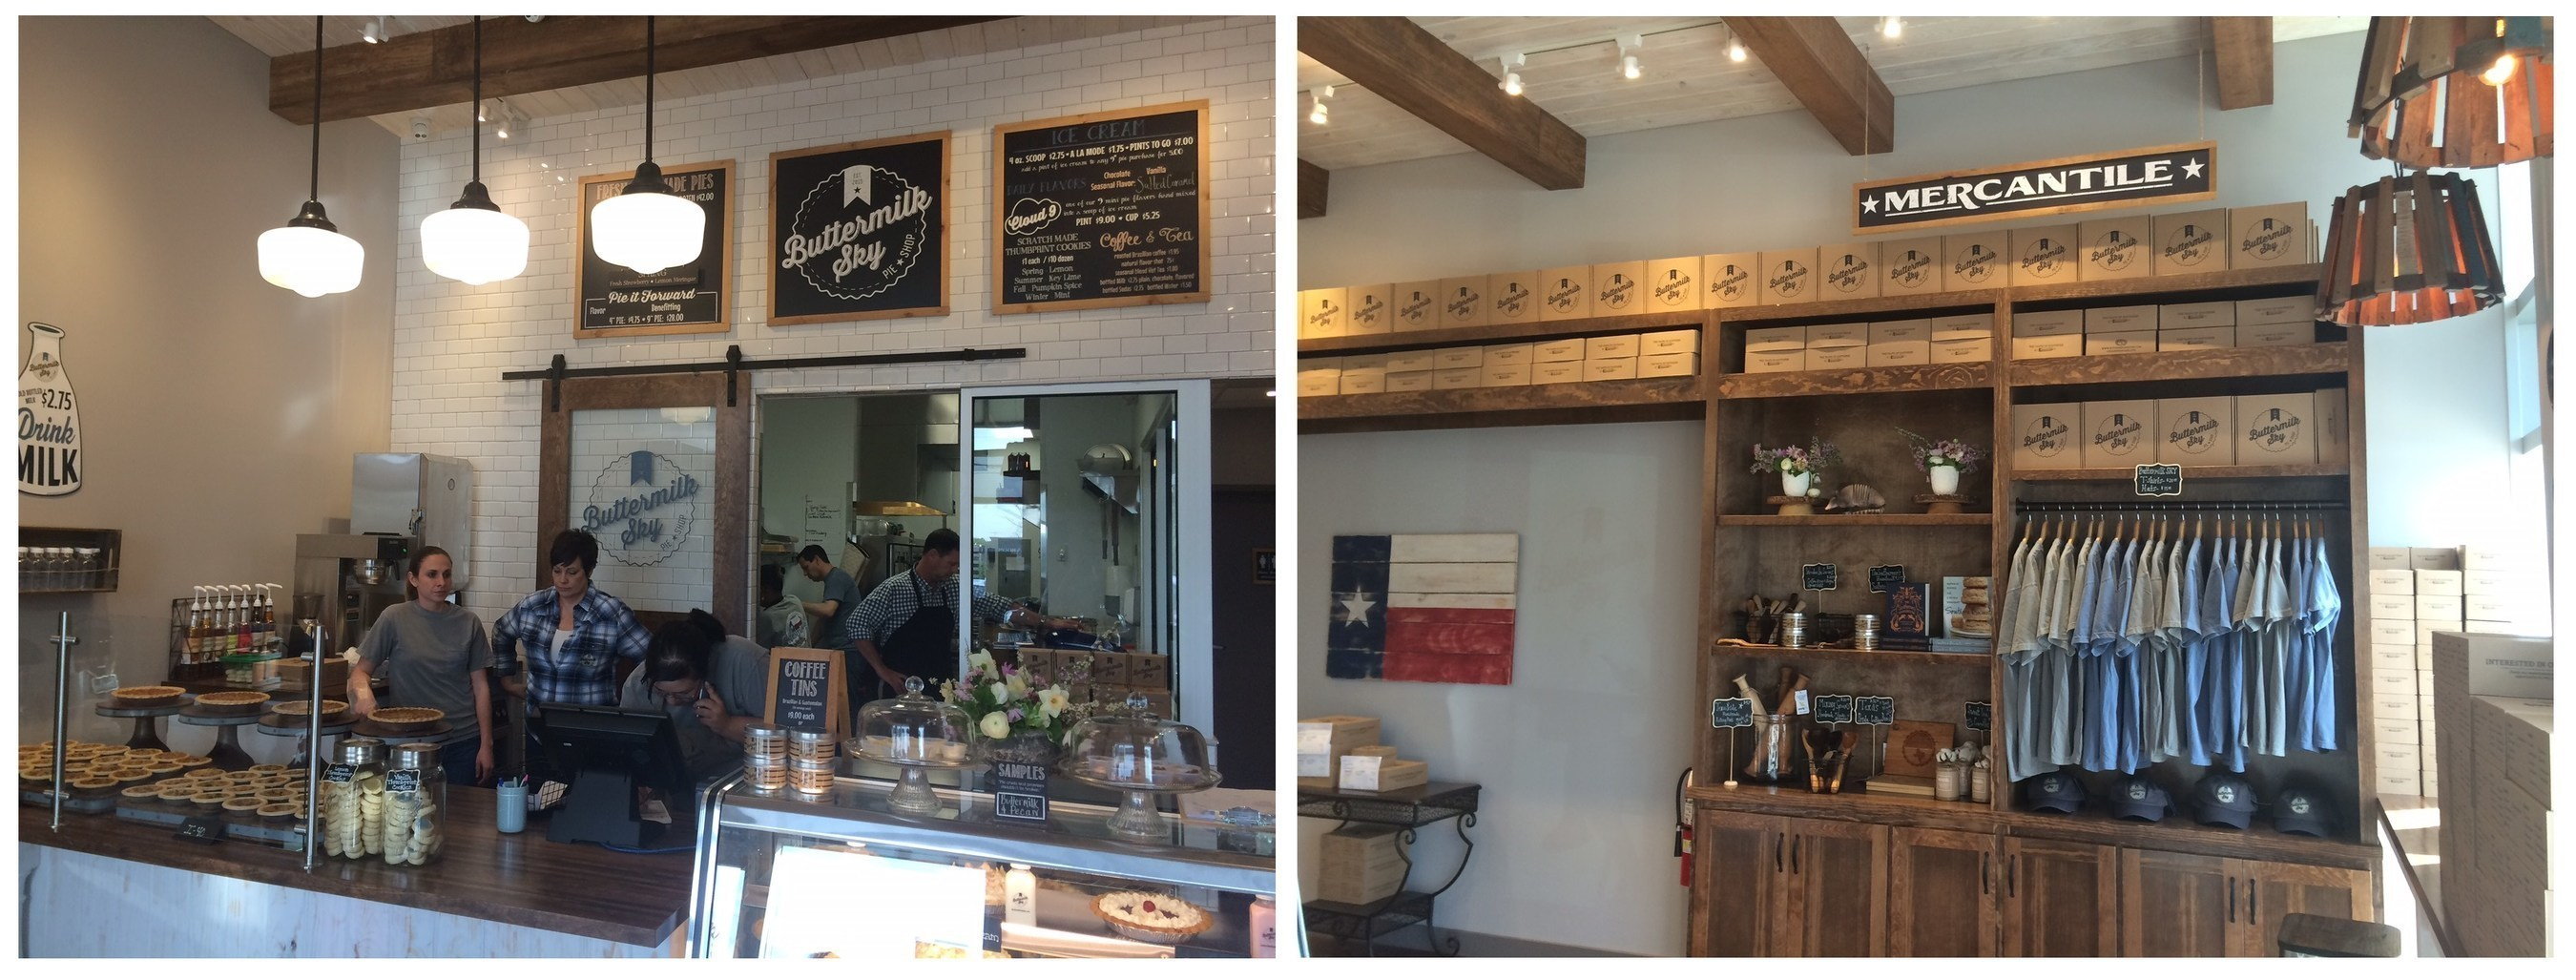 The store design for Buttermilk Sky Pie Shop, developed by Studio Four Design, is based on a southern traditional aesthetic to reflect the roots of the franchise owners Scott and Meredith Layton.